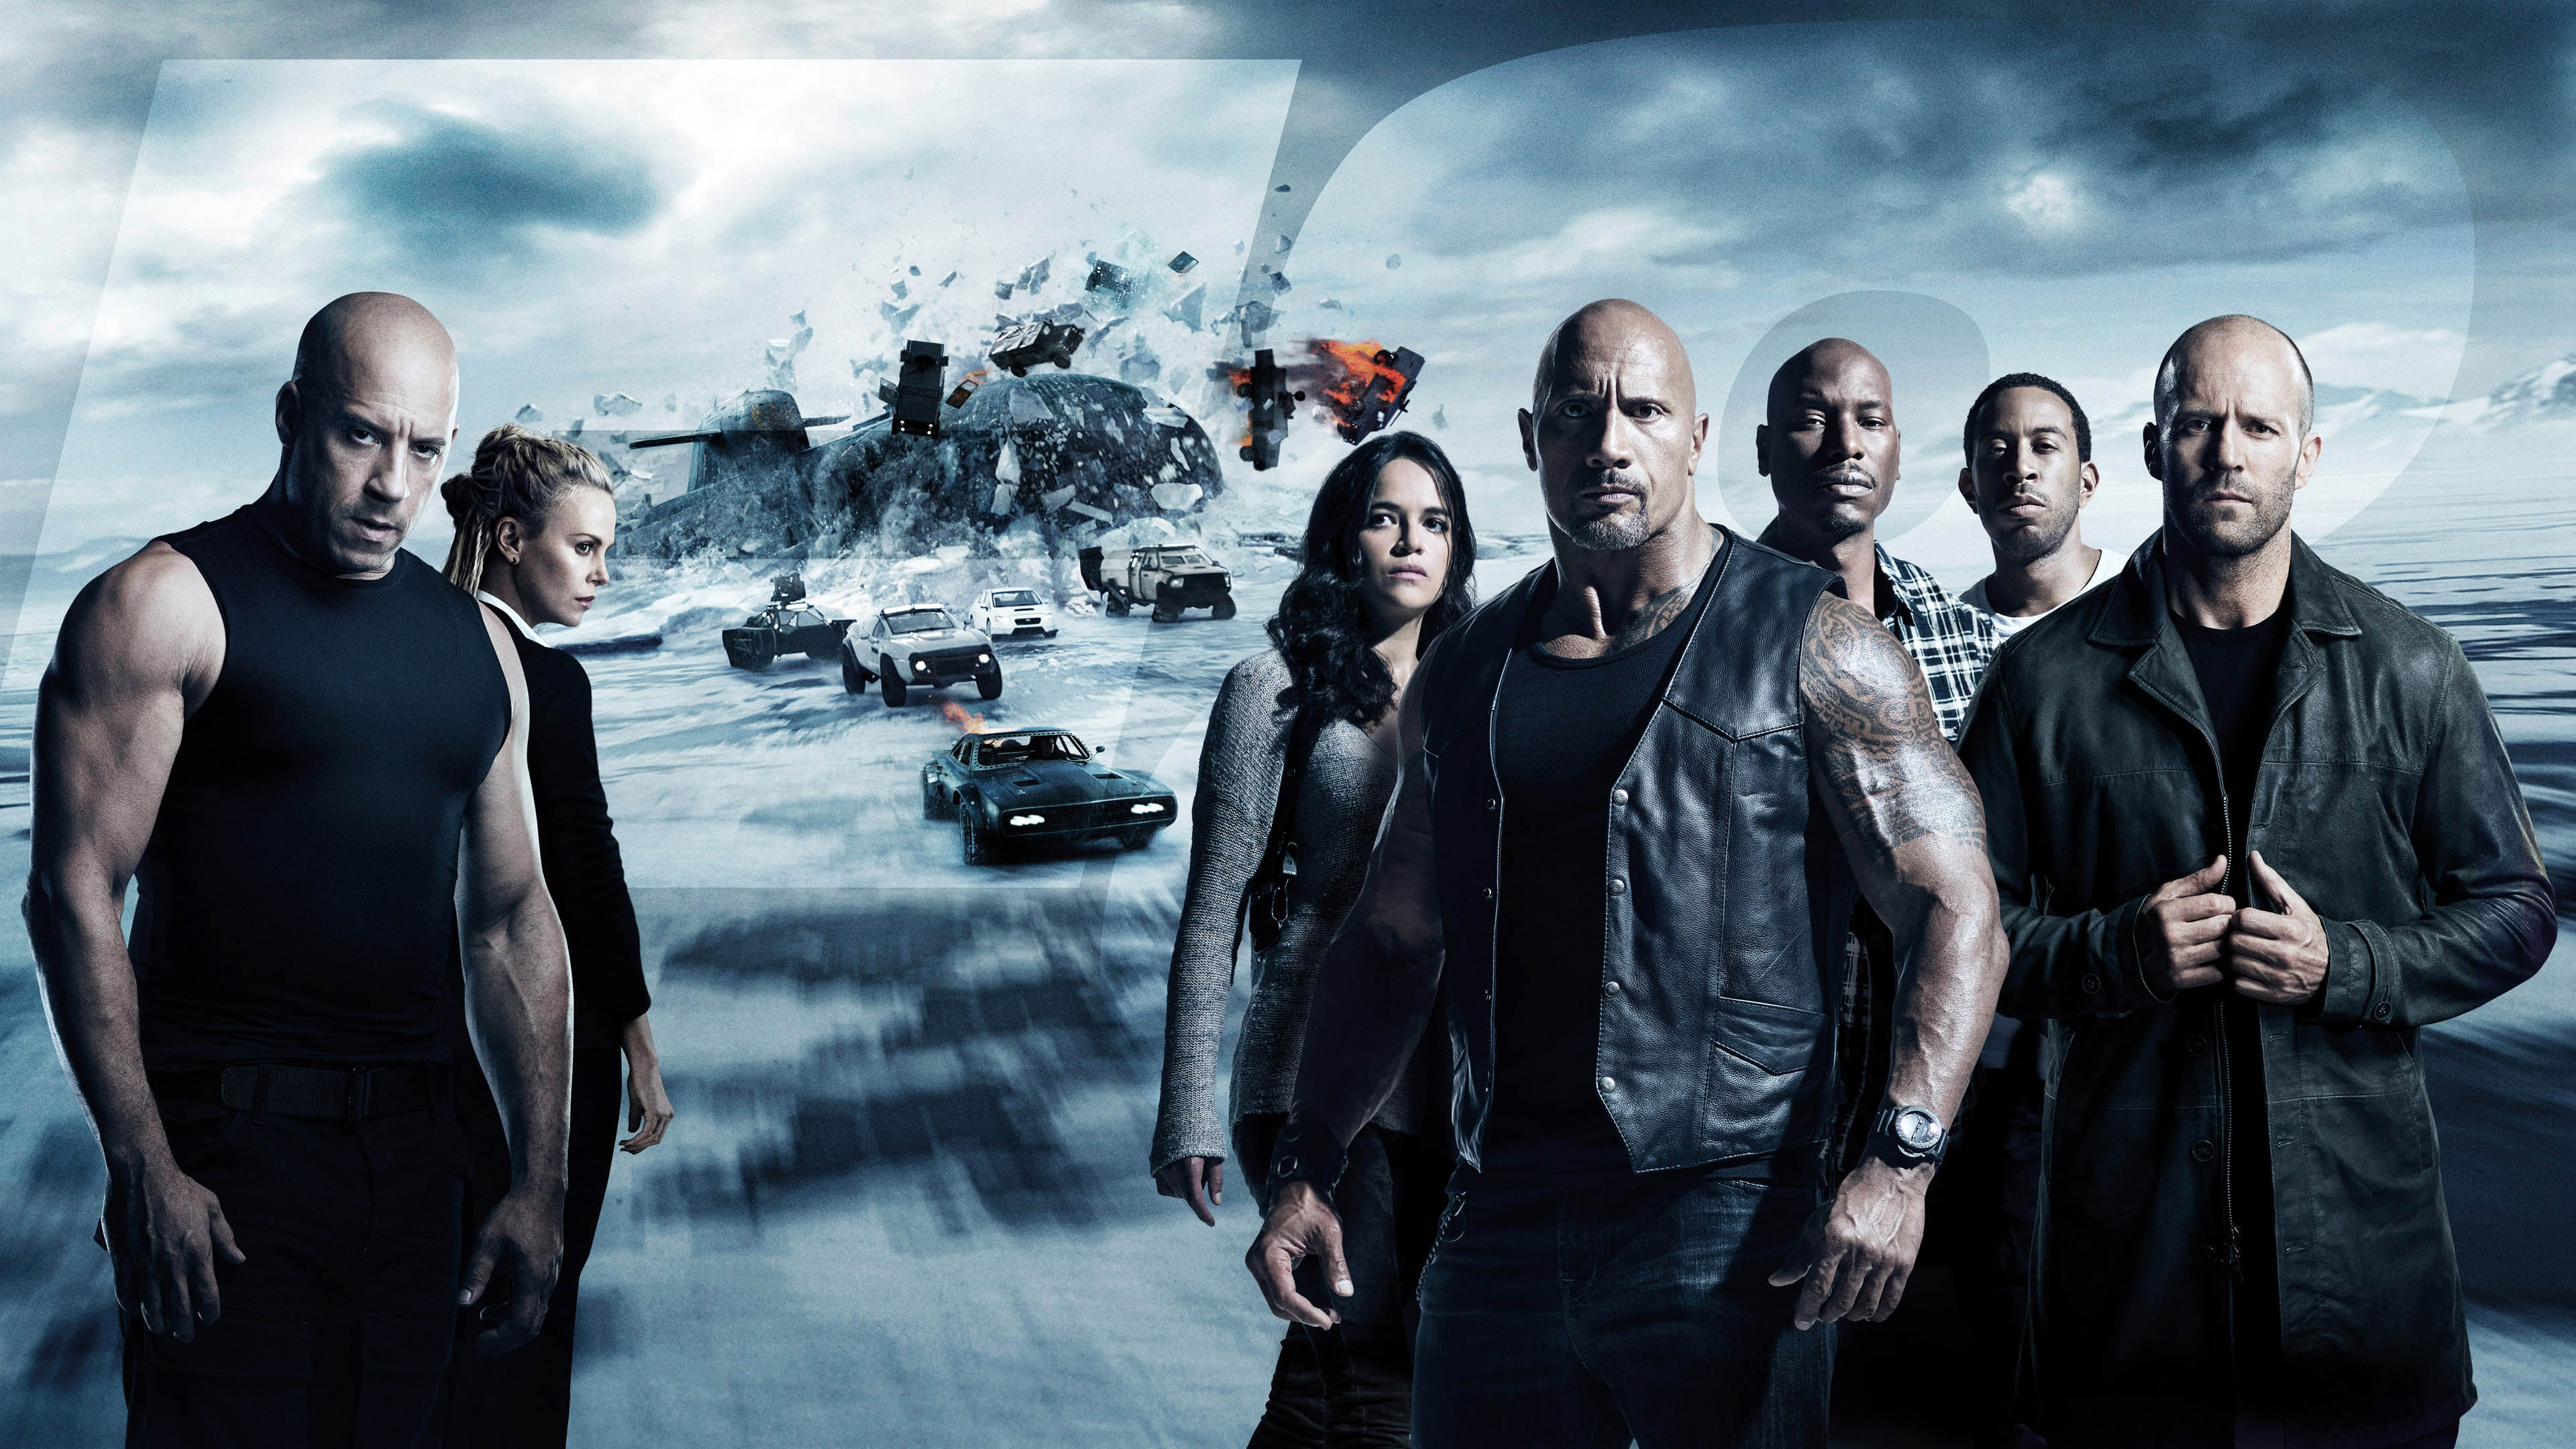 fast and furious 8 download free